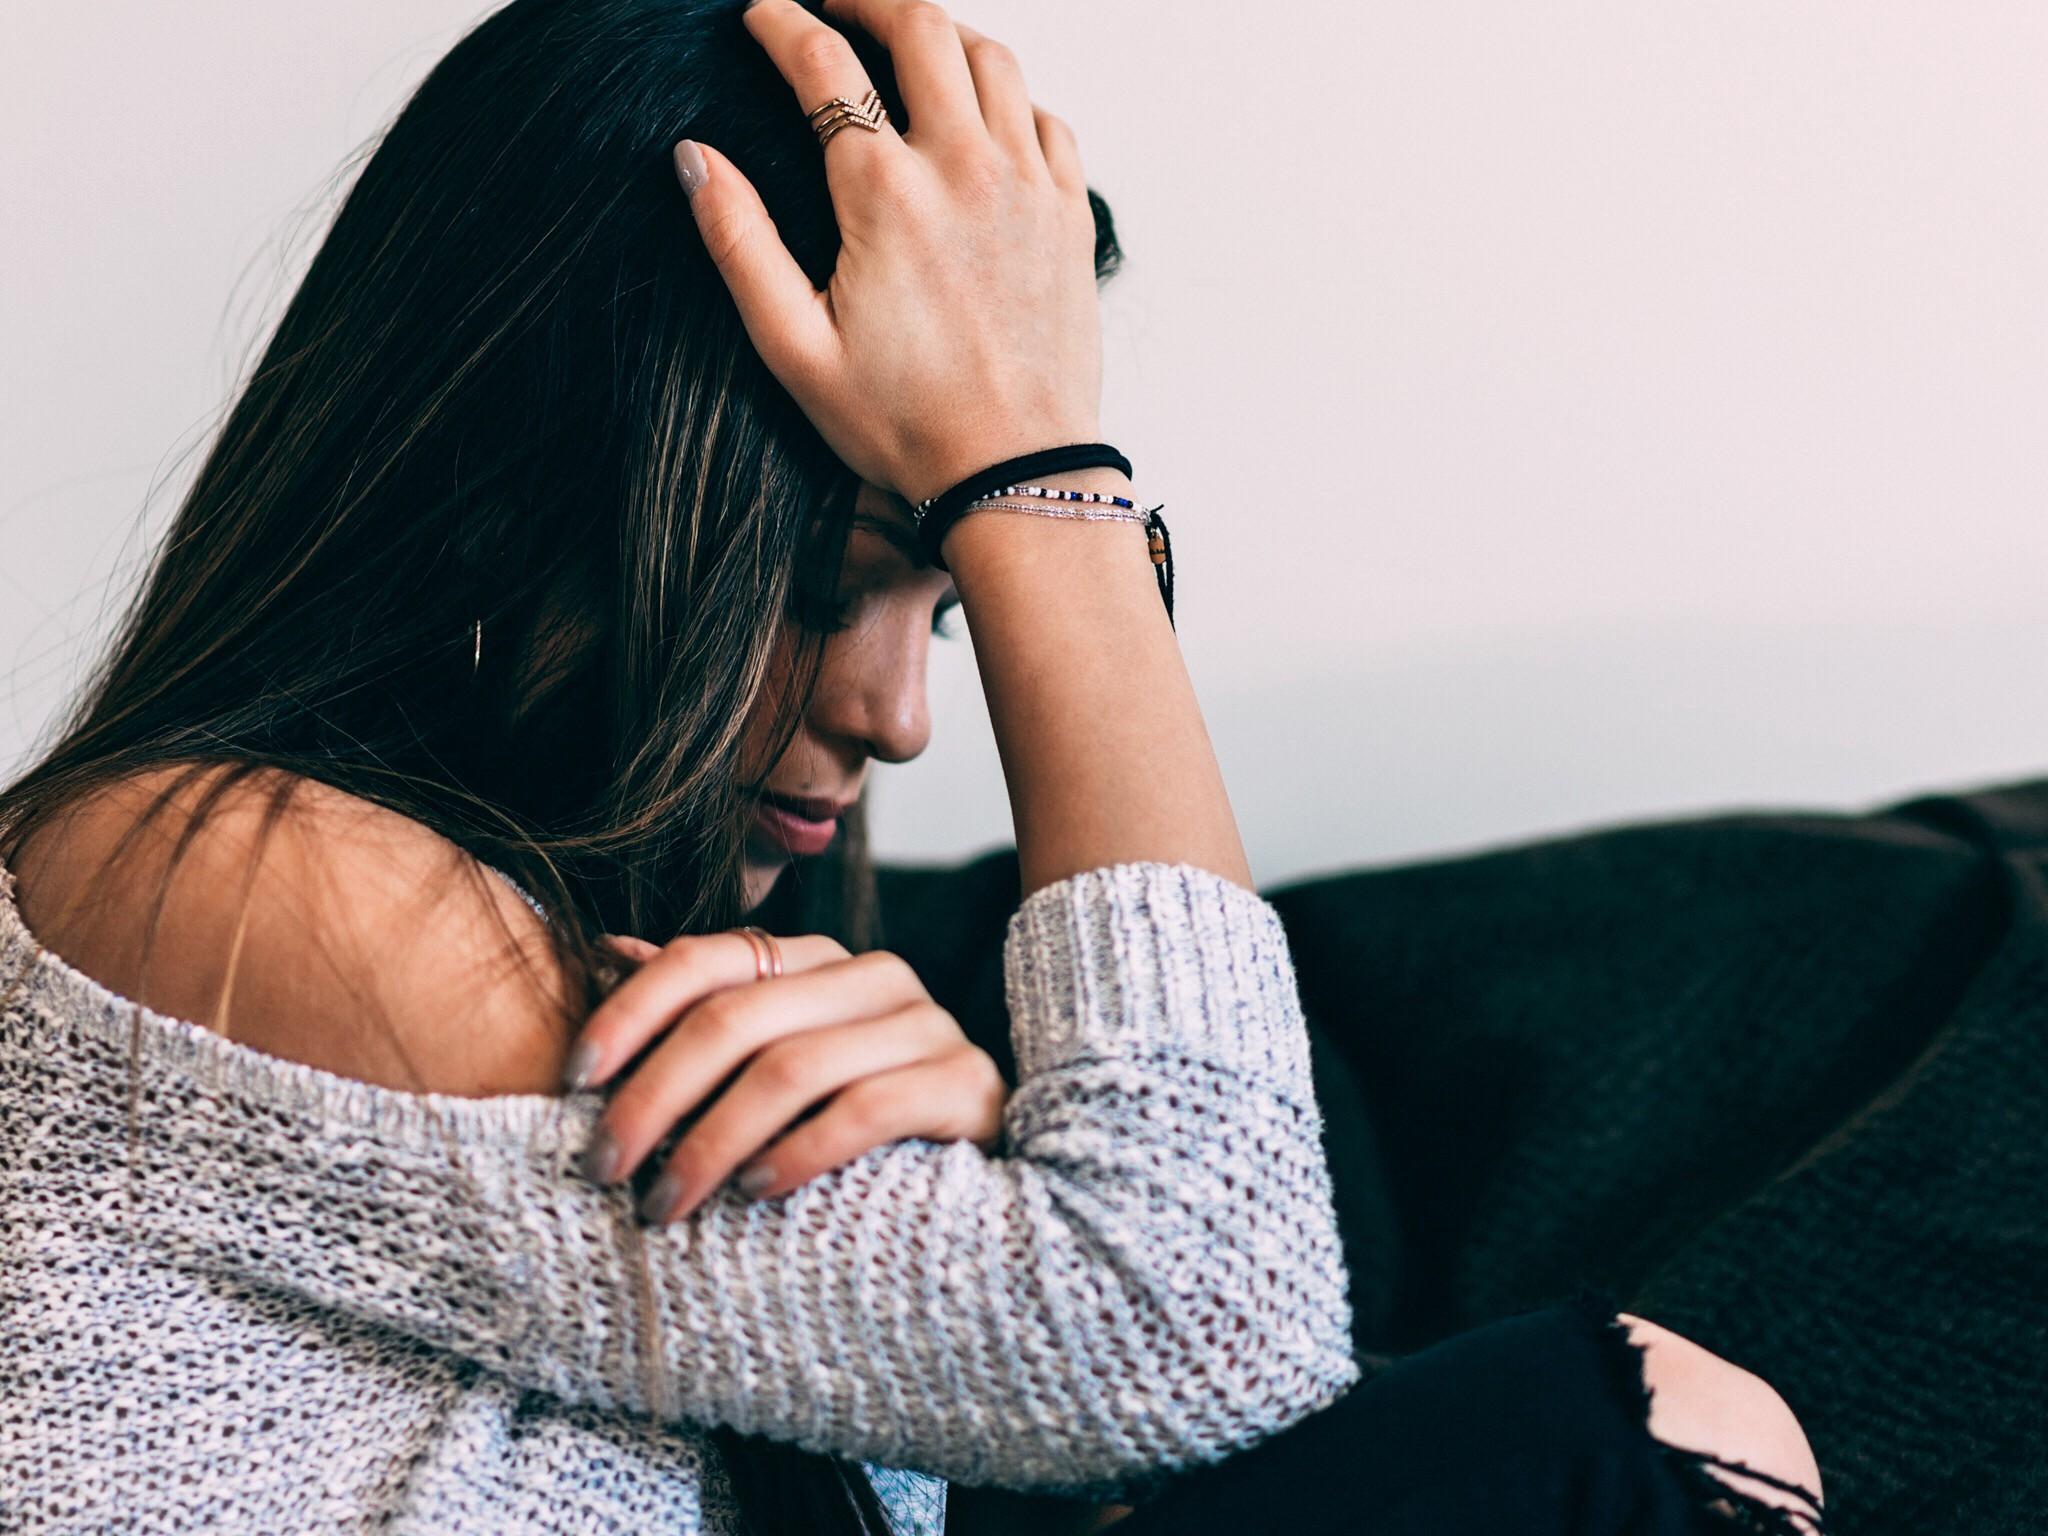 A sad woman with dark hair holds her head in her hands on a couch.